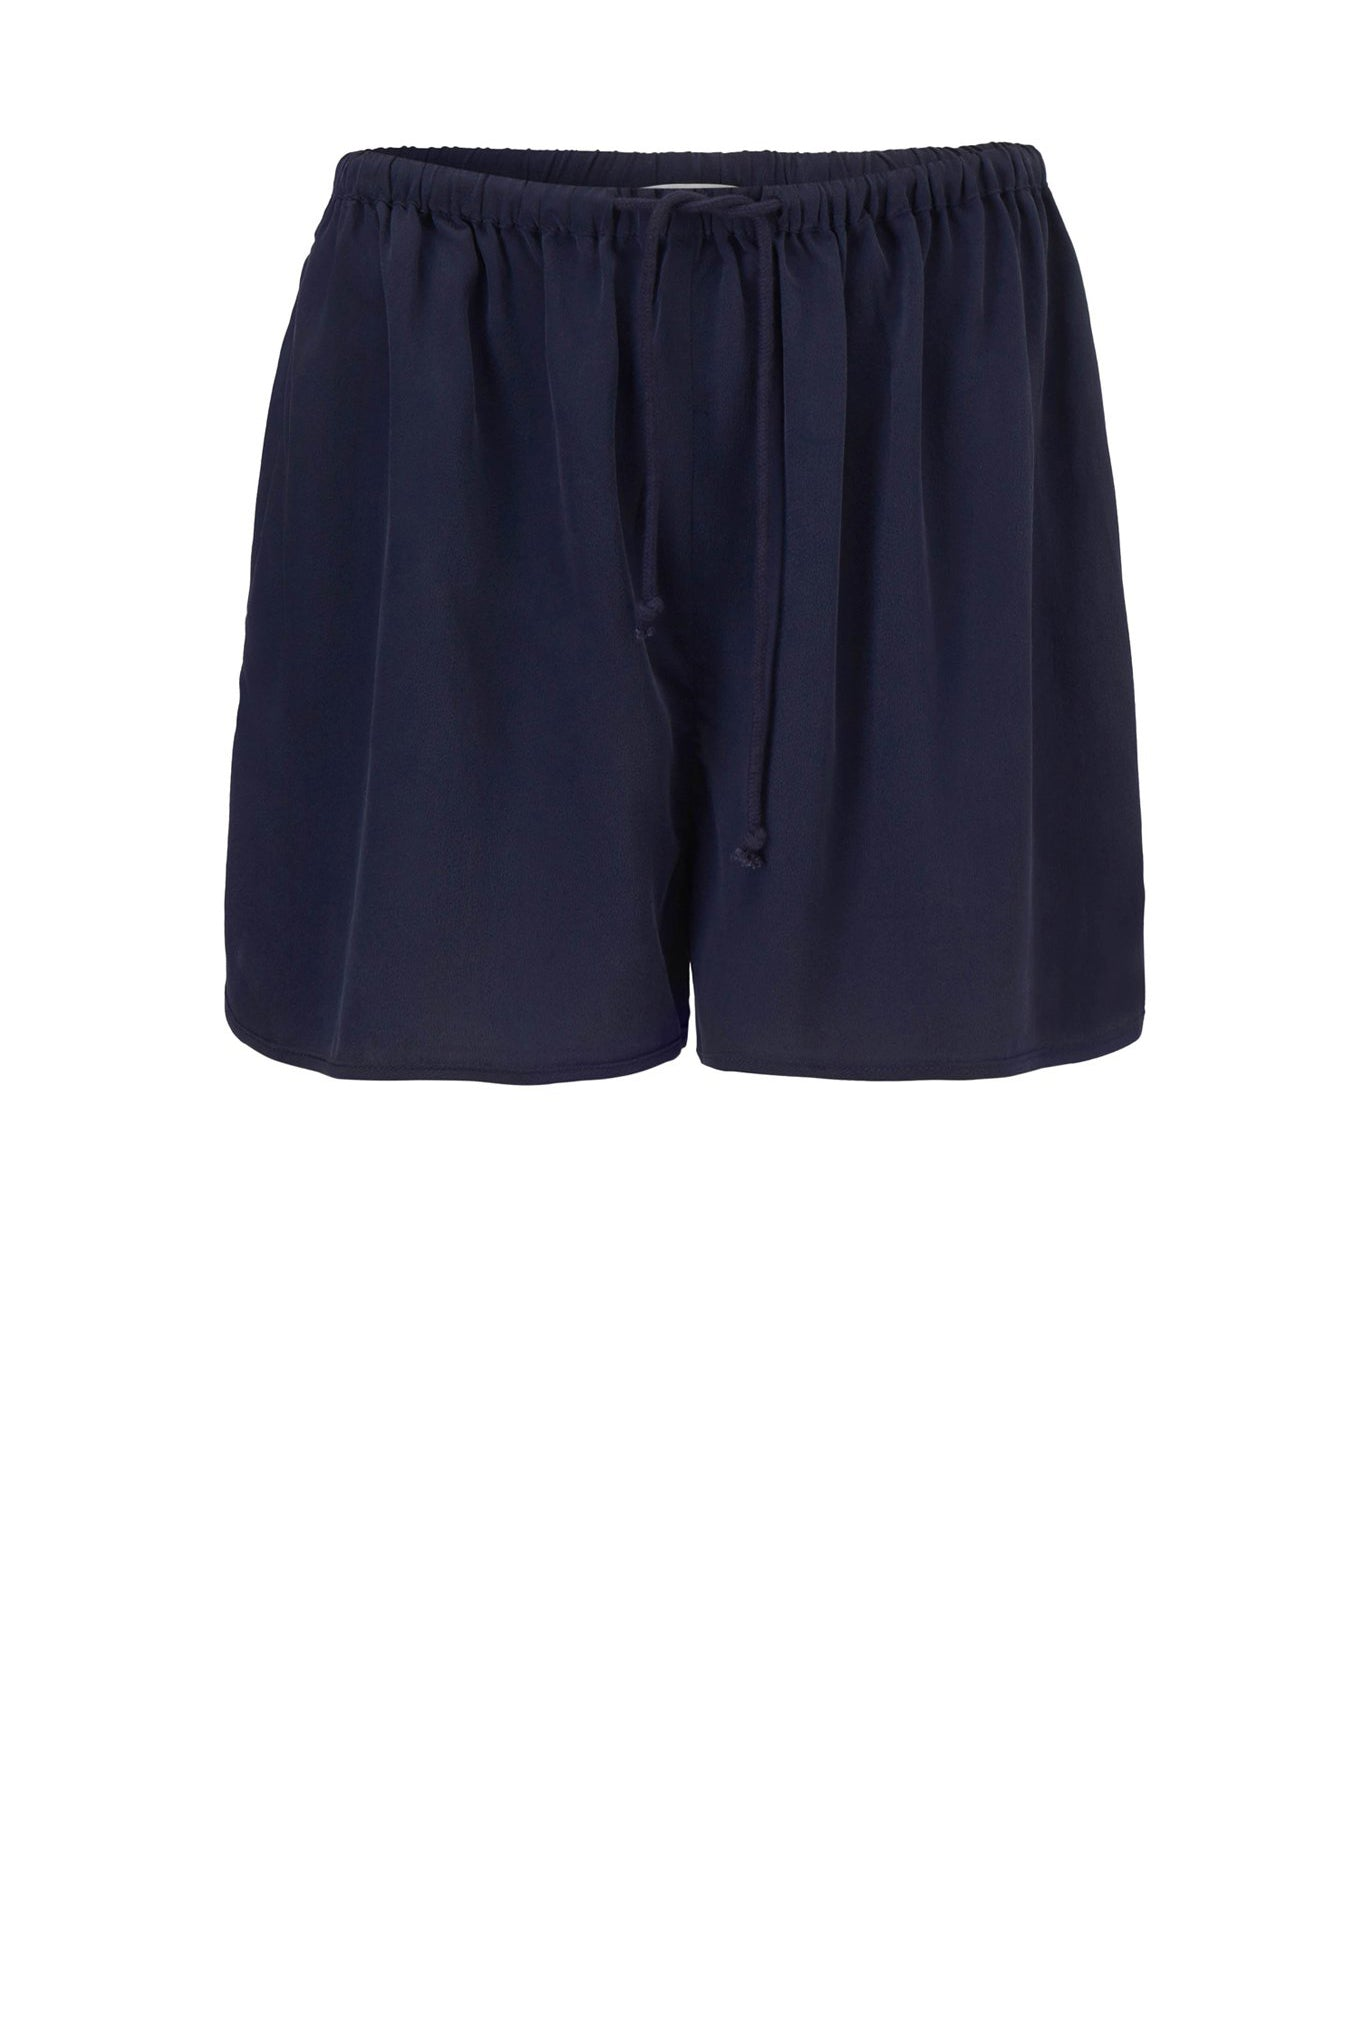 Barry Shorts - Navy